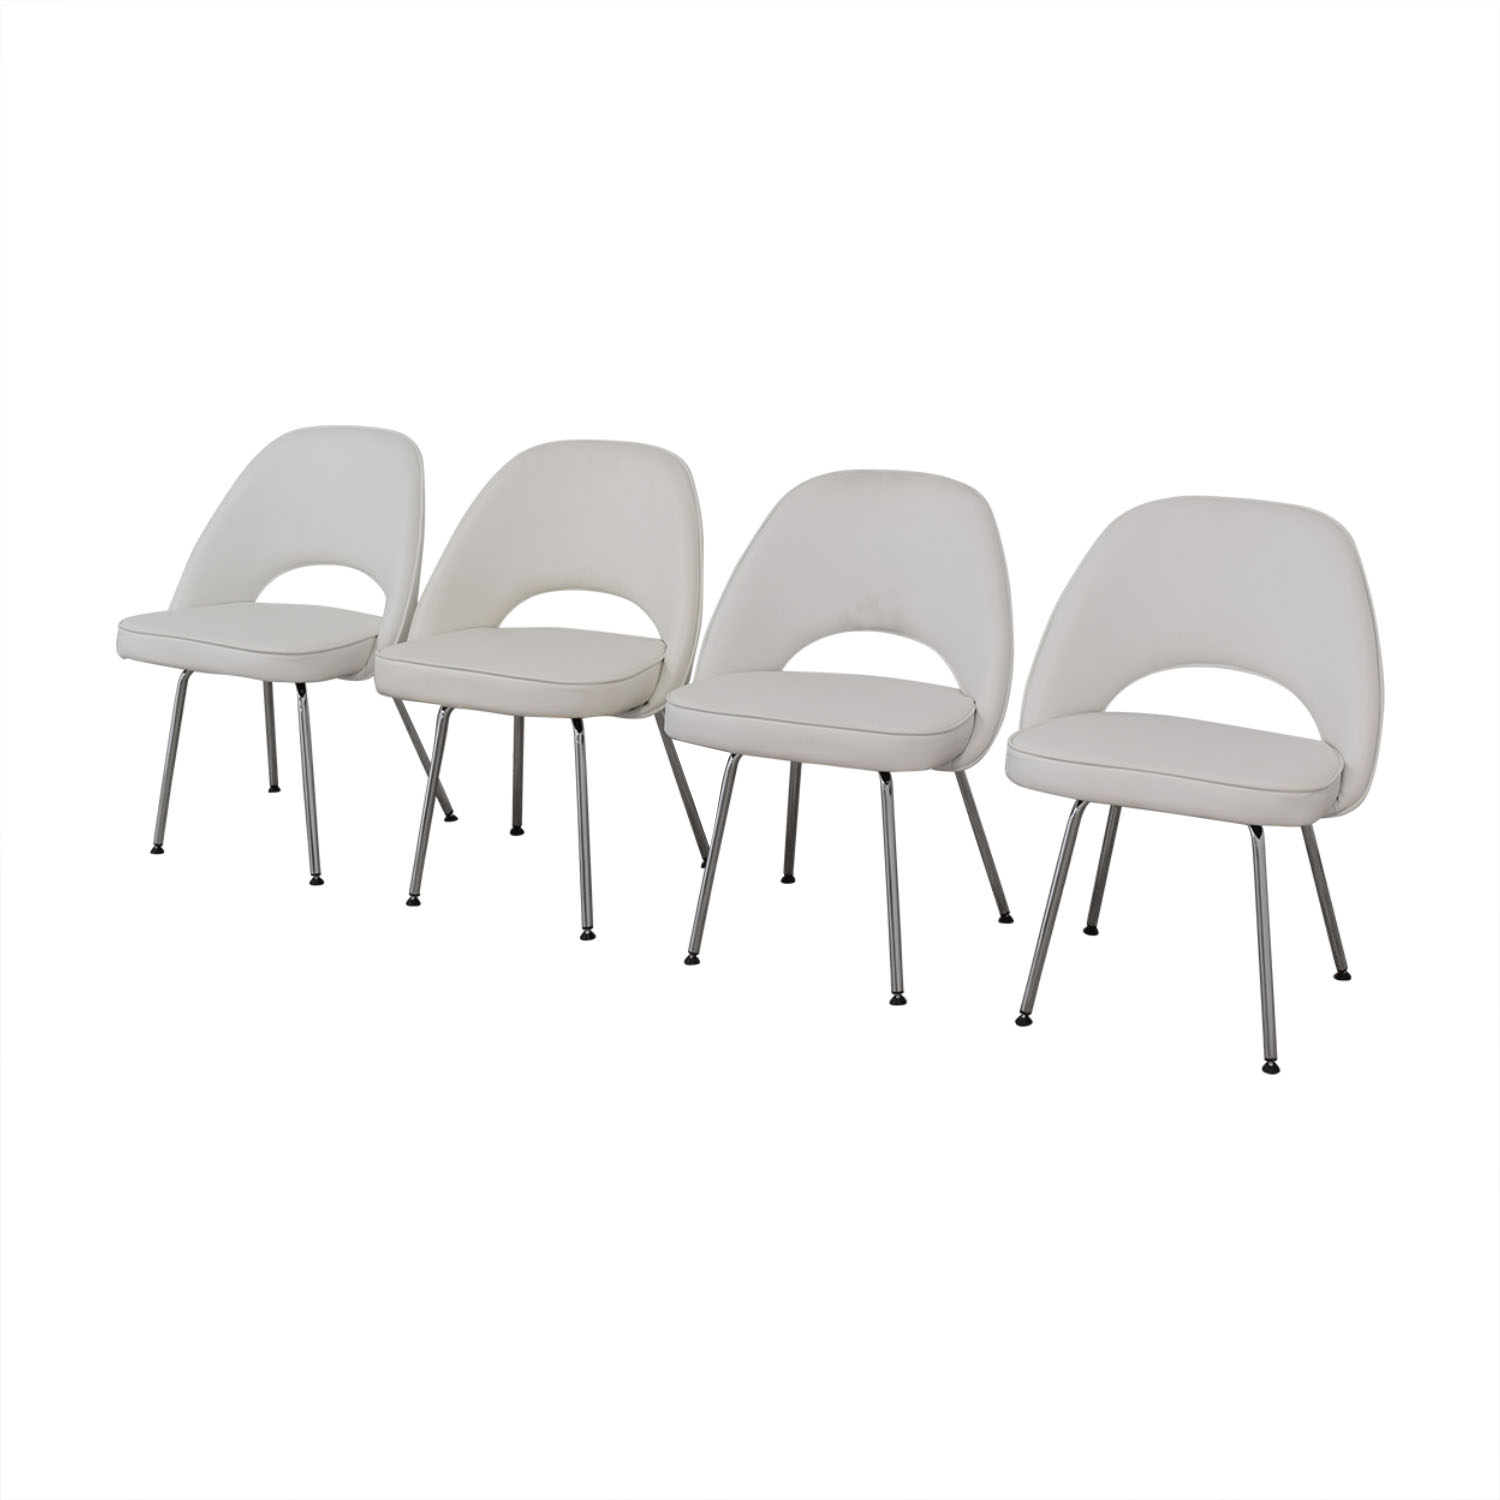 Control Brand Control Brand Leather Dining Chairs discount